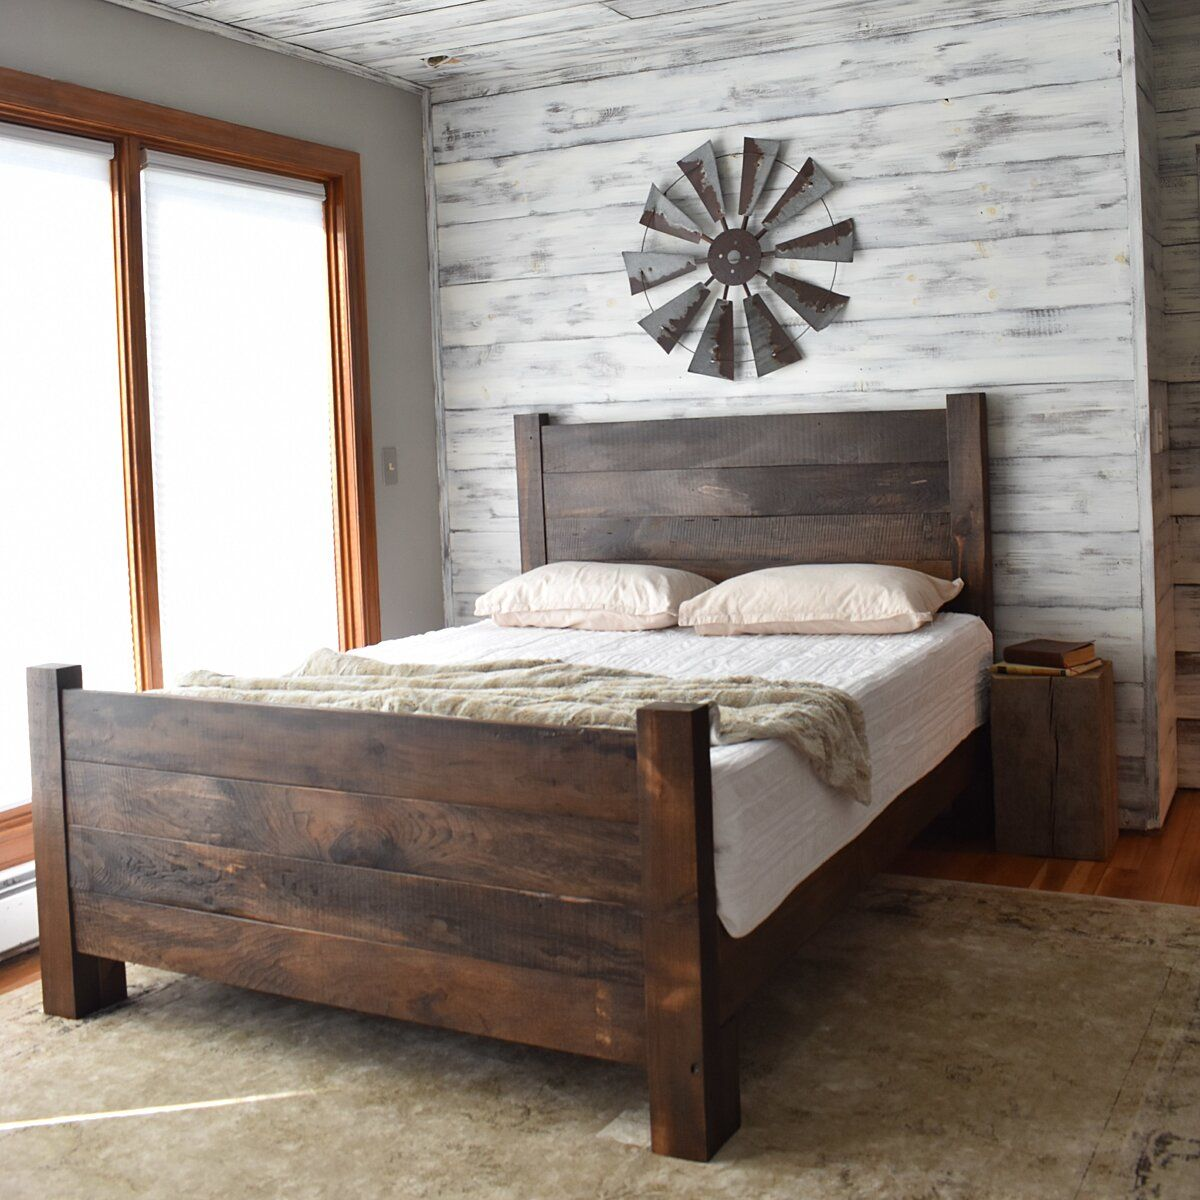 Farmhouse Headboard and Foot board in 2020 Farmhouse